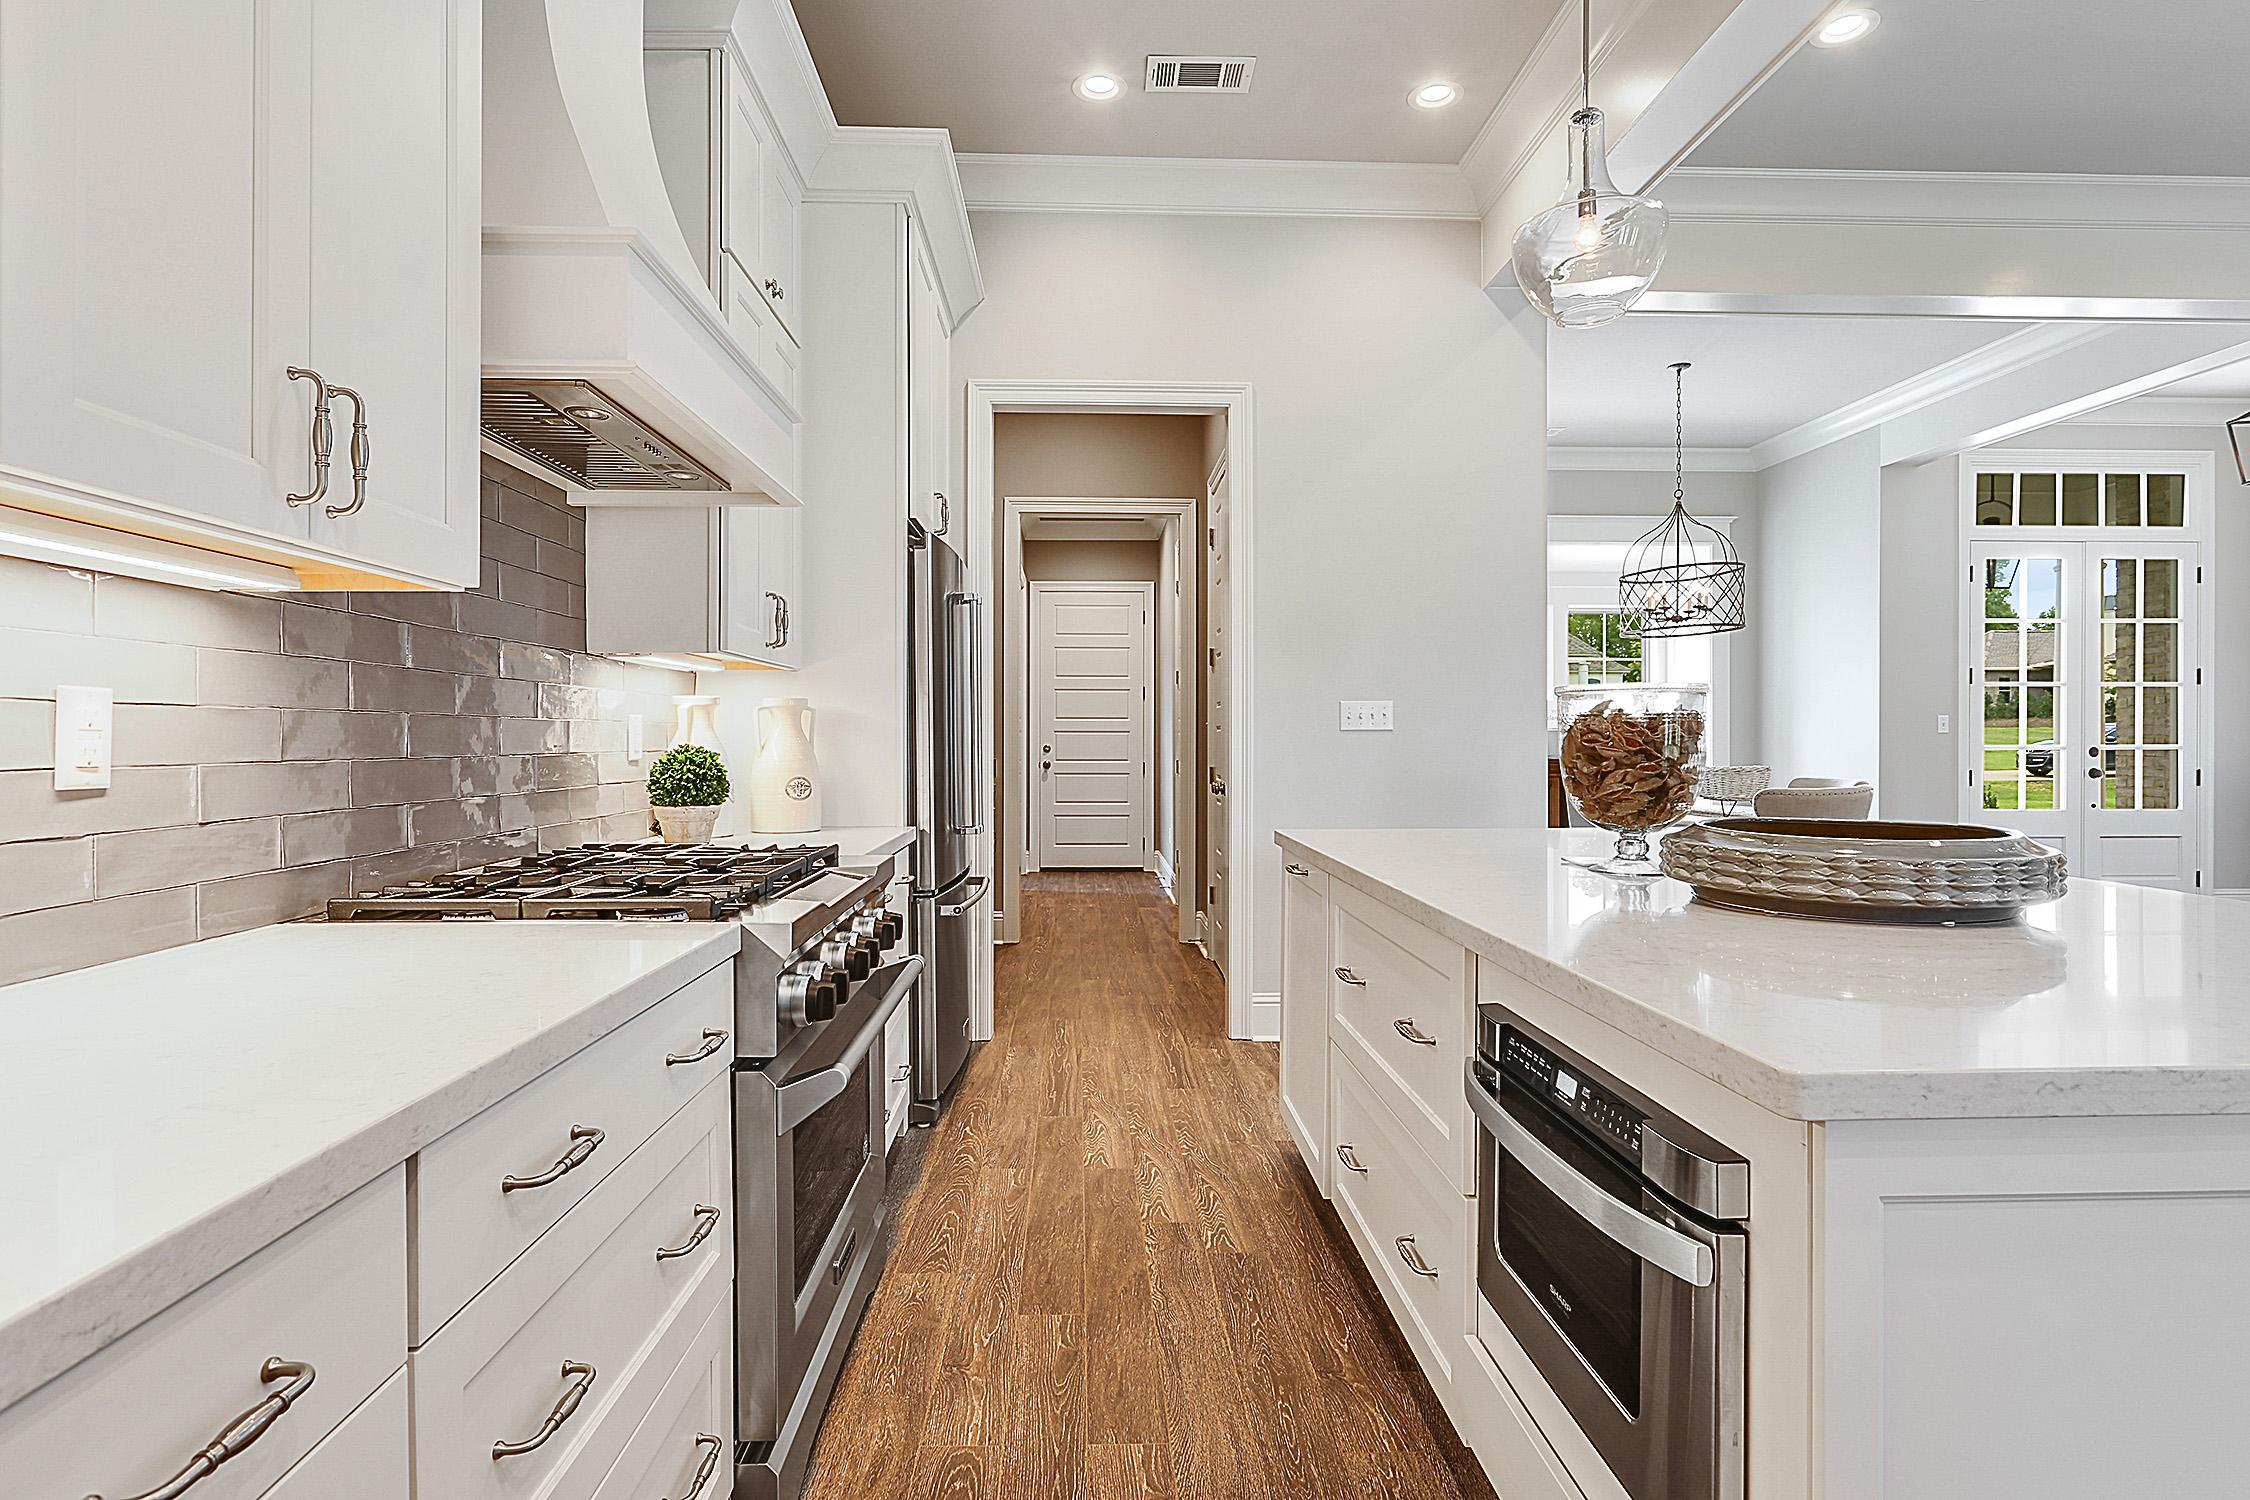 Kitchen featured in the Danielle By Highland Homes in New Orleans, LA